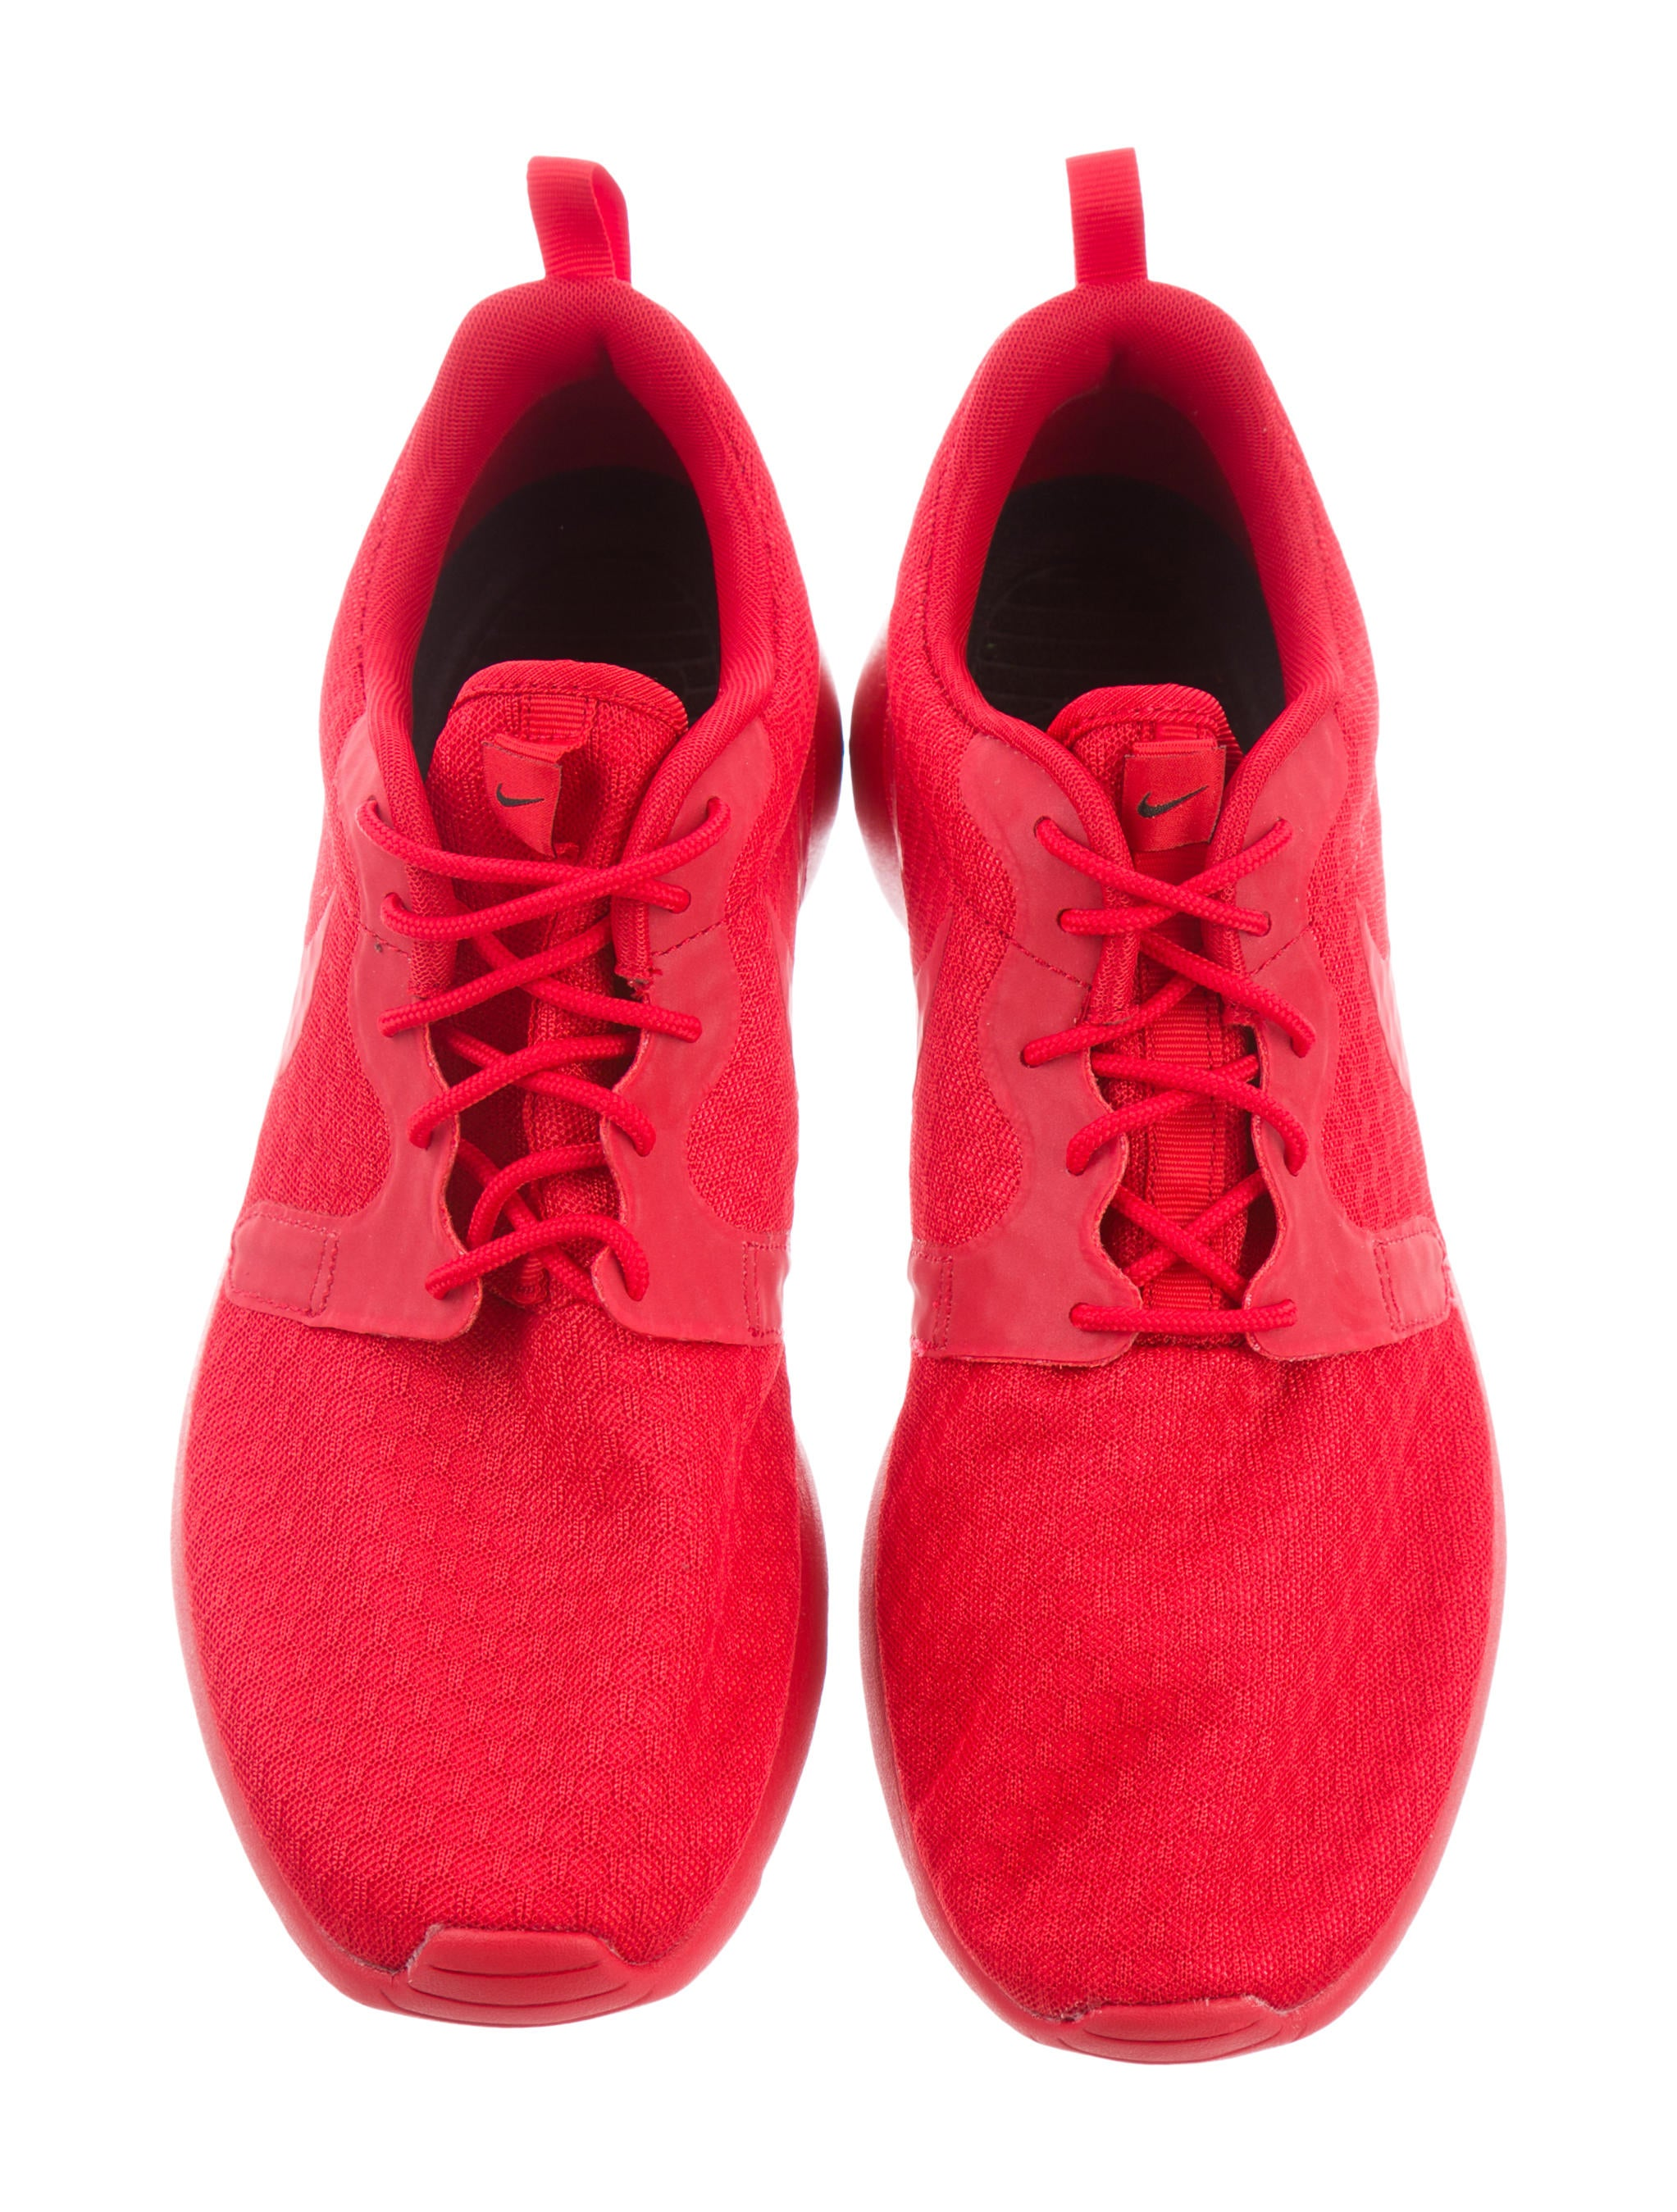 nike roshe one hyperfuse sneakers w   tags